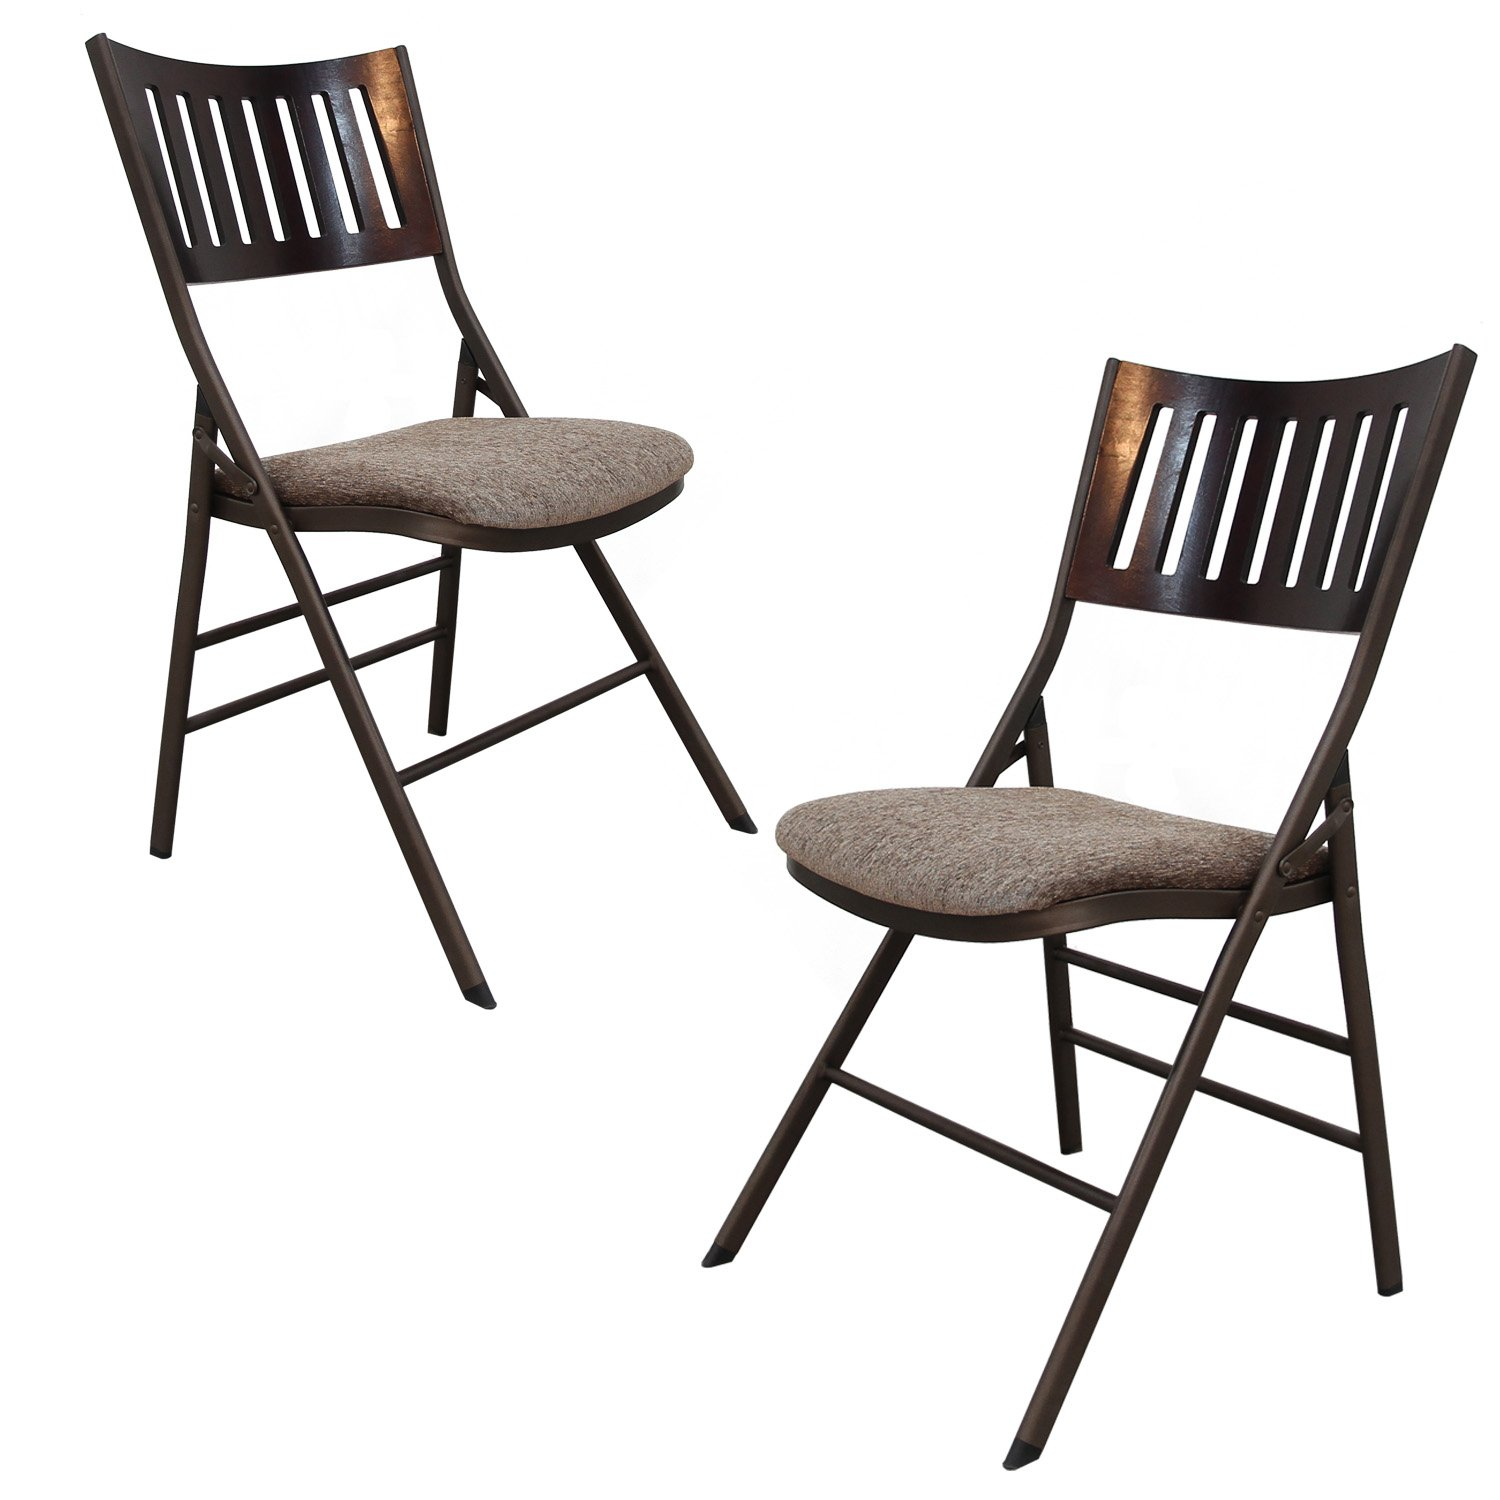 Adeco Steel Folding Chair - Brown Powder Coated Frame with Brown Fabric Seats- Height 18 Inch - Set of 2